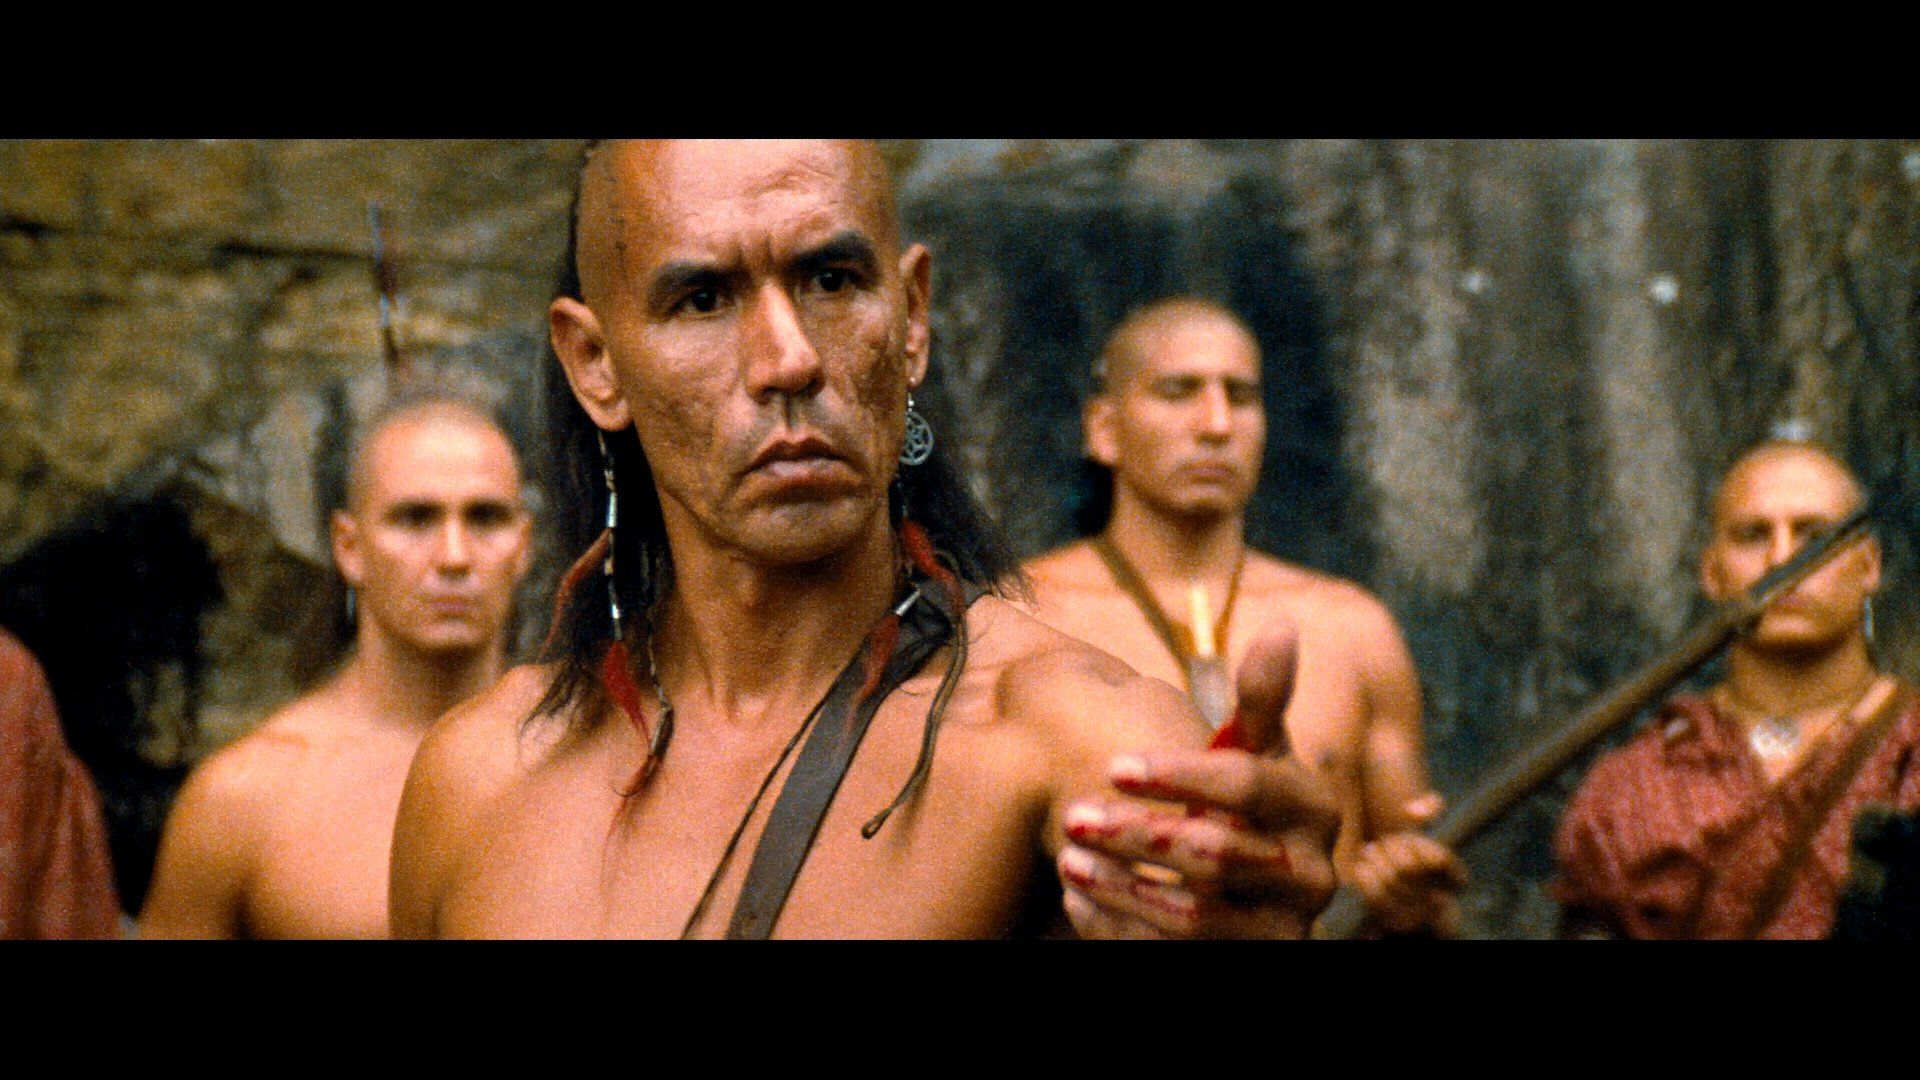 last of the mohicans action adventure drama native